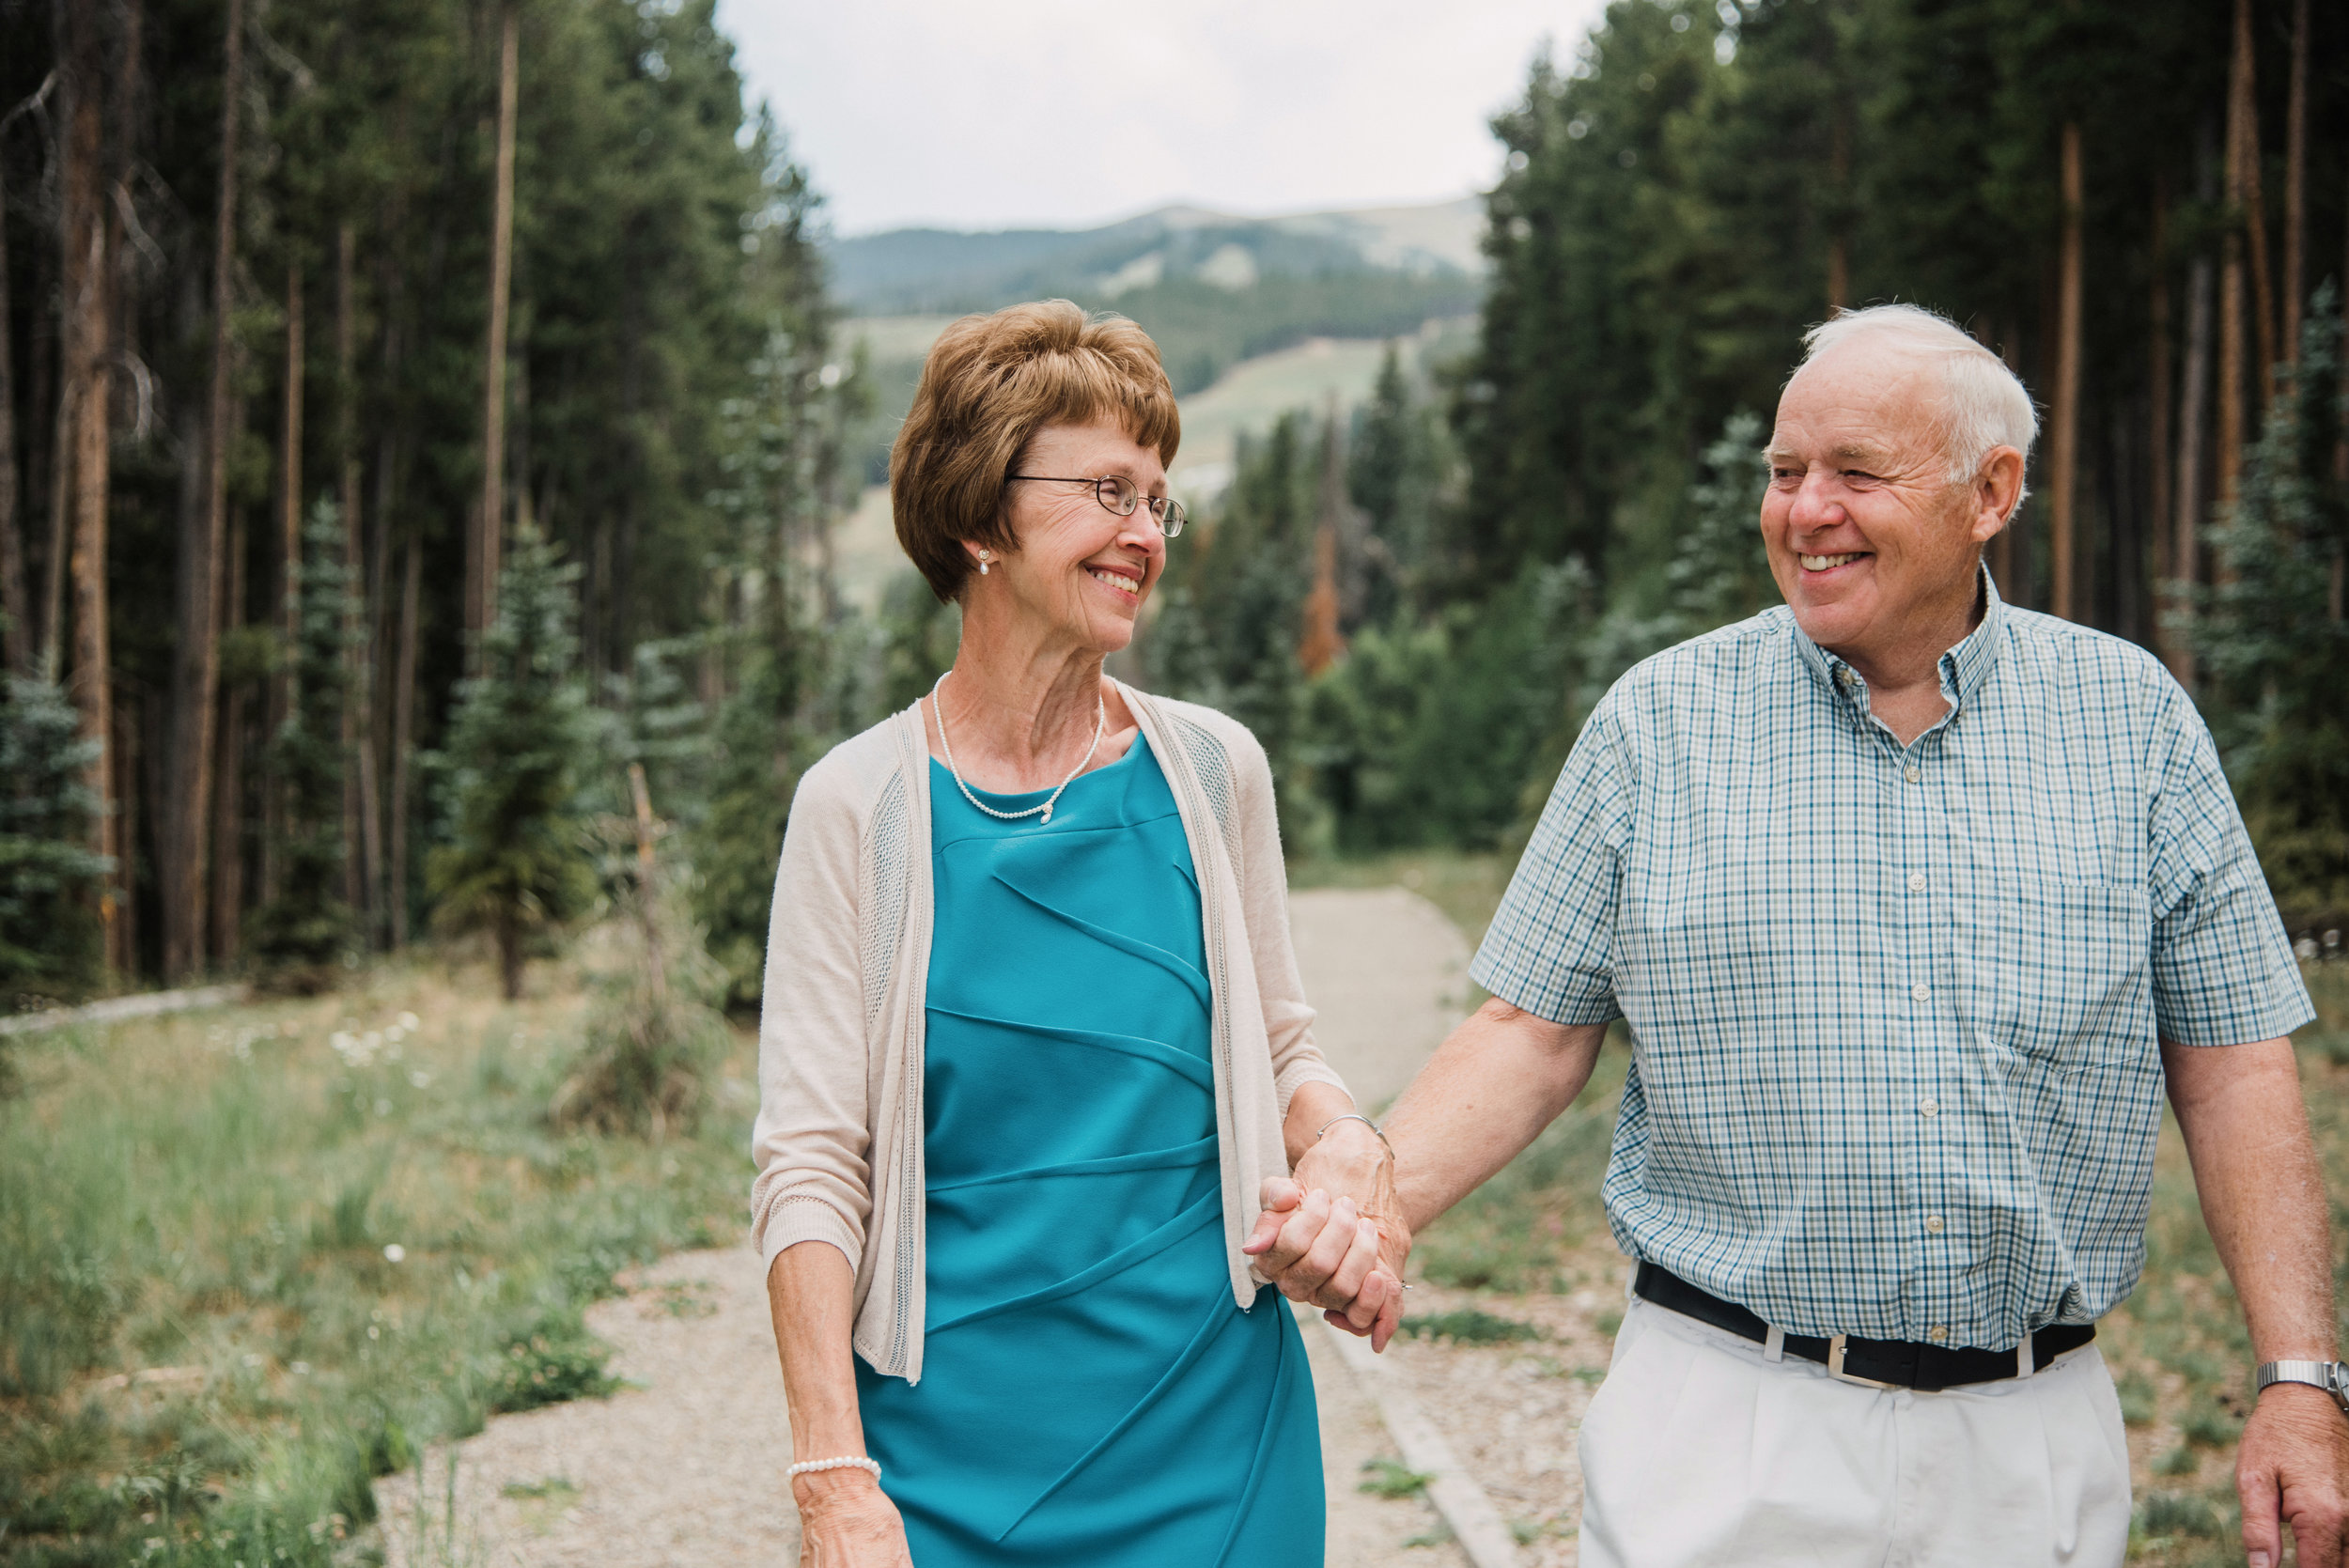 Grandparent_Engagement_Session_Family_Breckenridge_Apollo_Photo_44.jpg